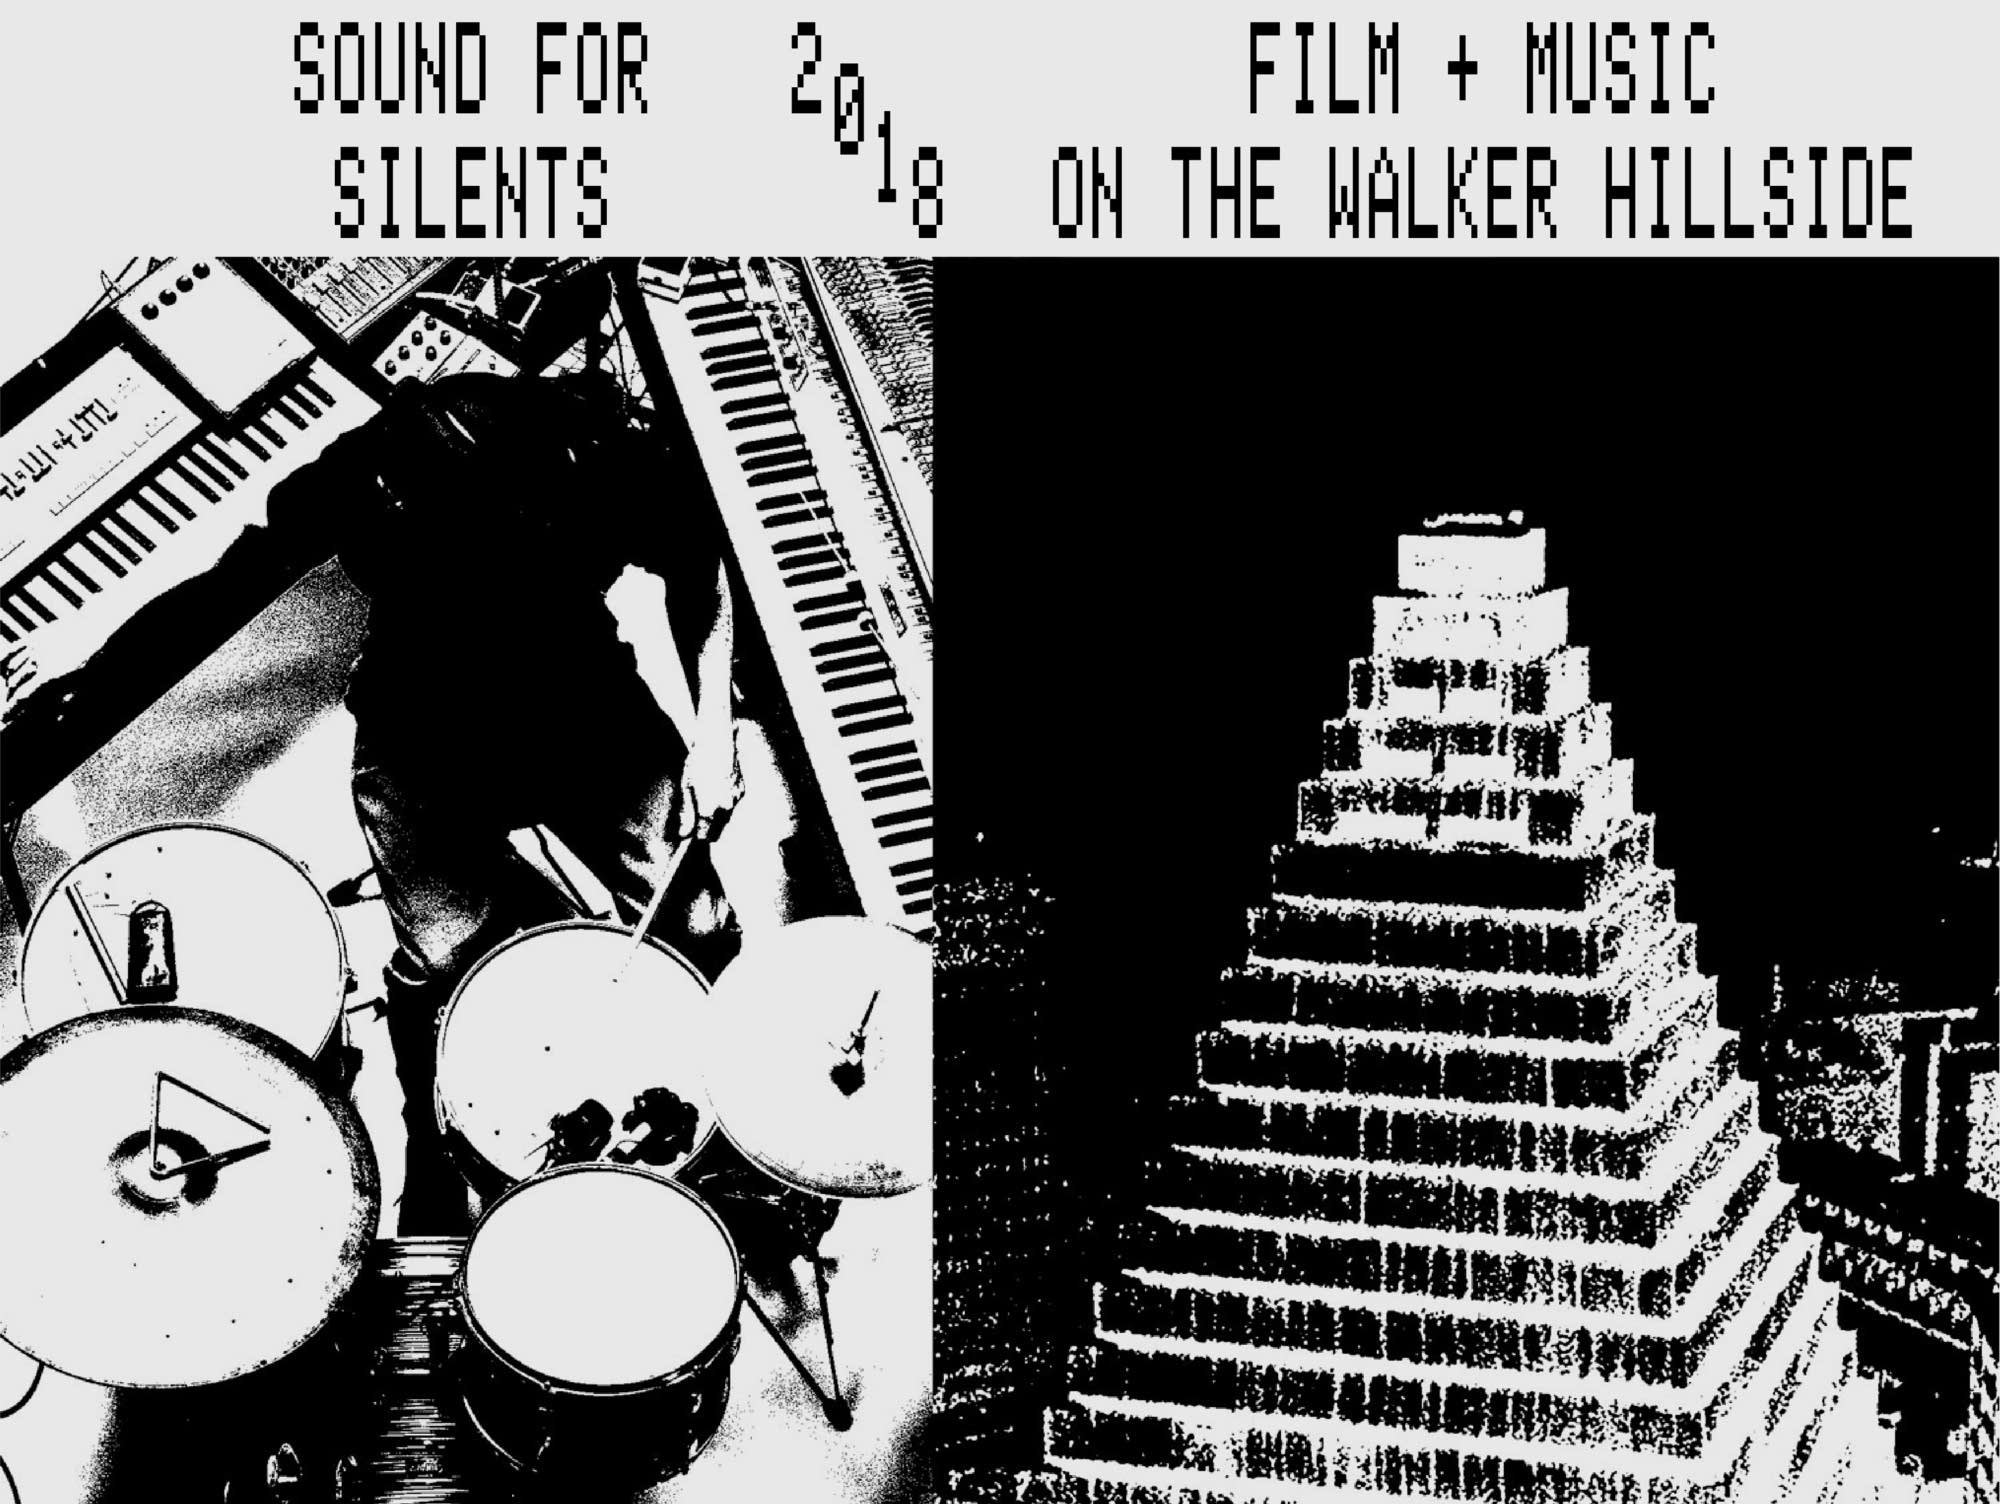 Sound for Silents at the Walker Art Center